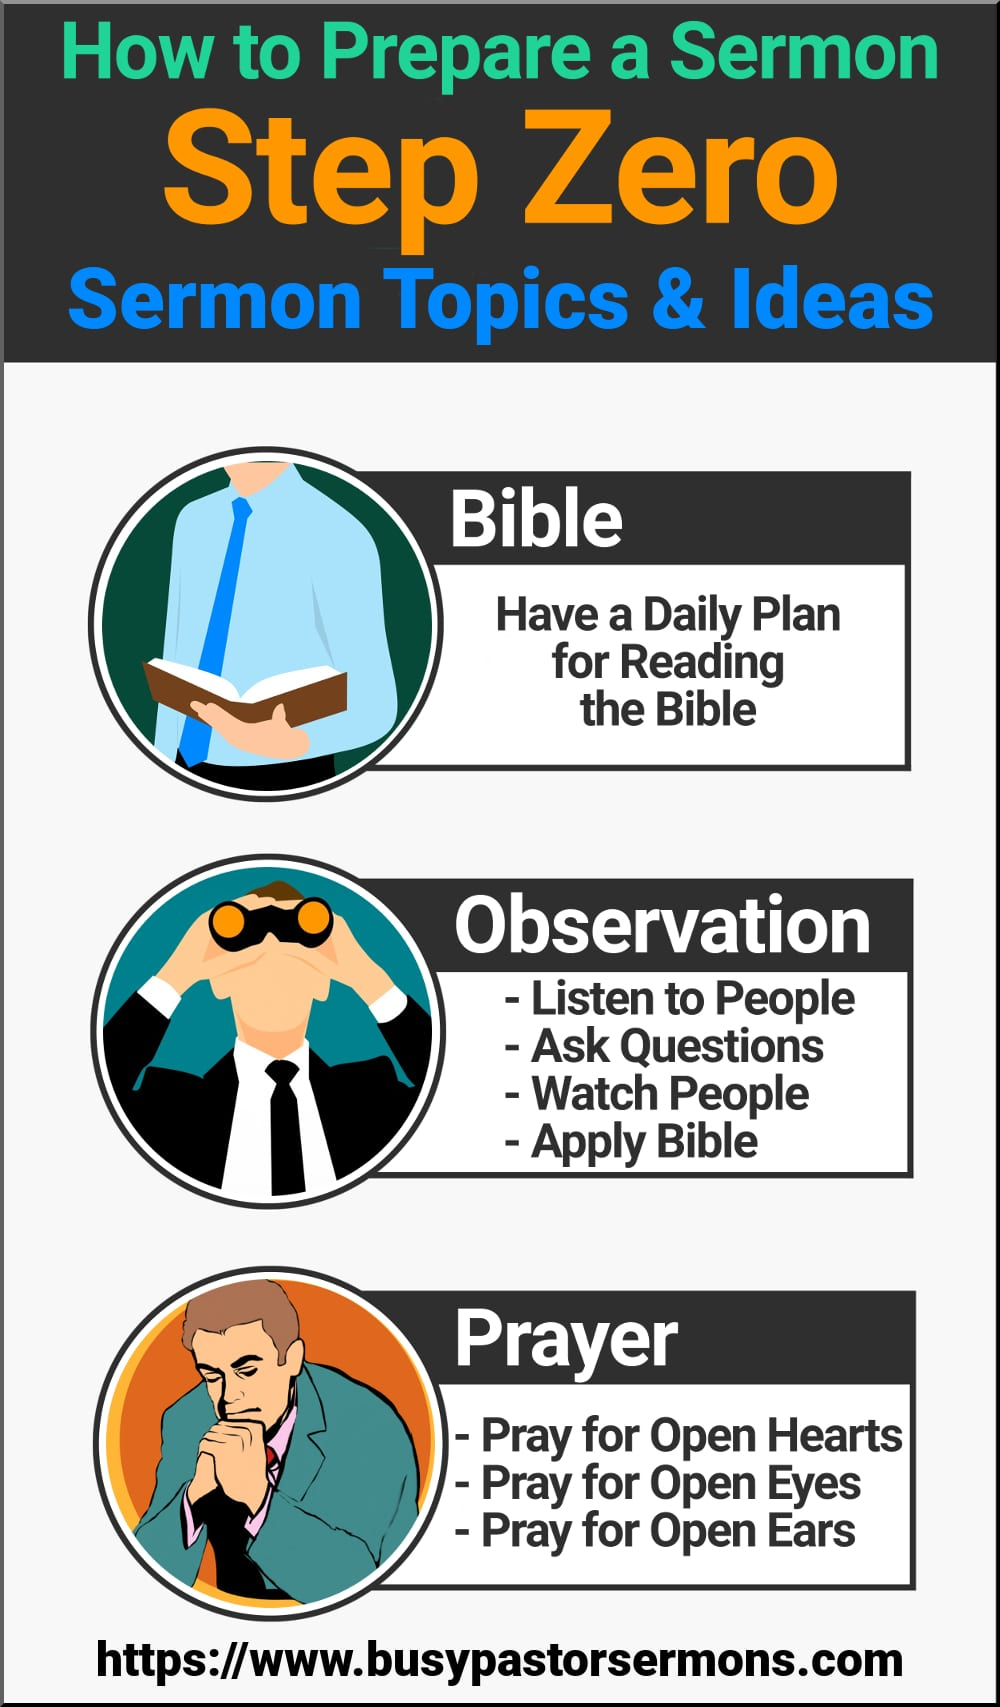 How to Prepare a Sermon Step Zero